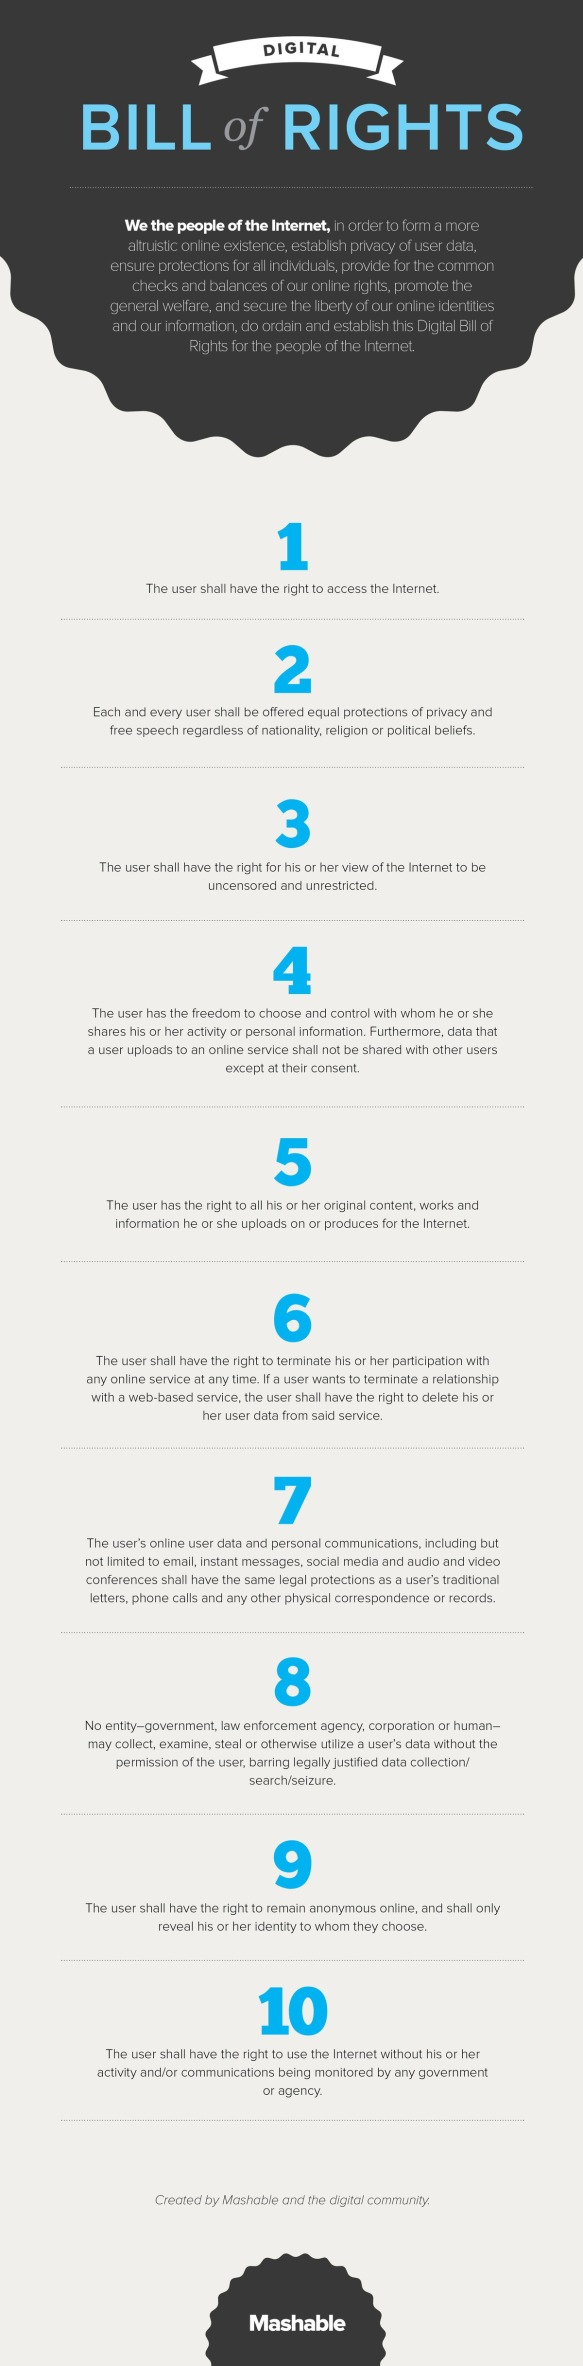 Digital Bill of Rights